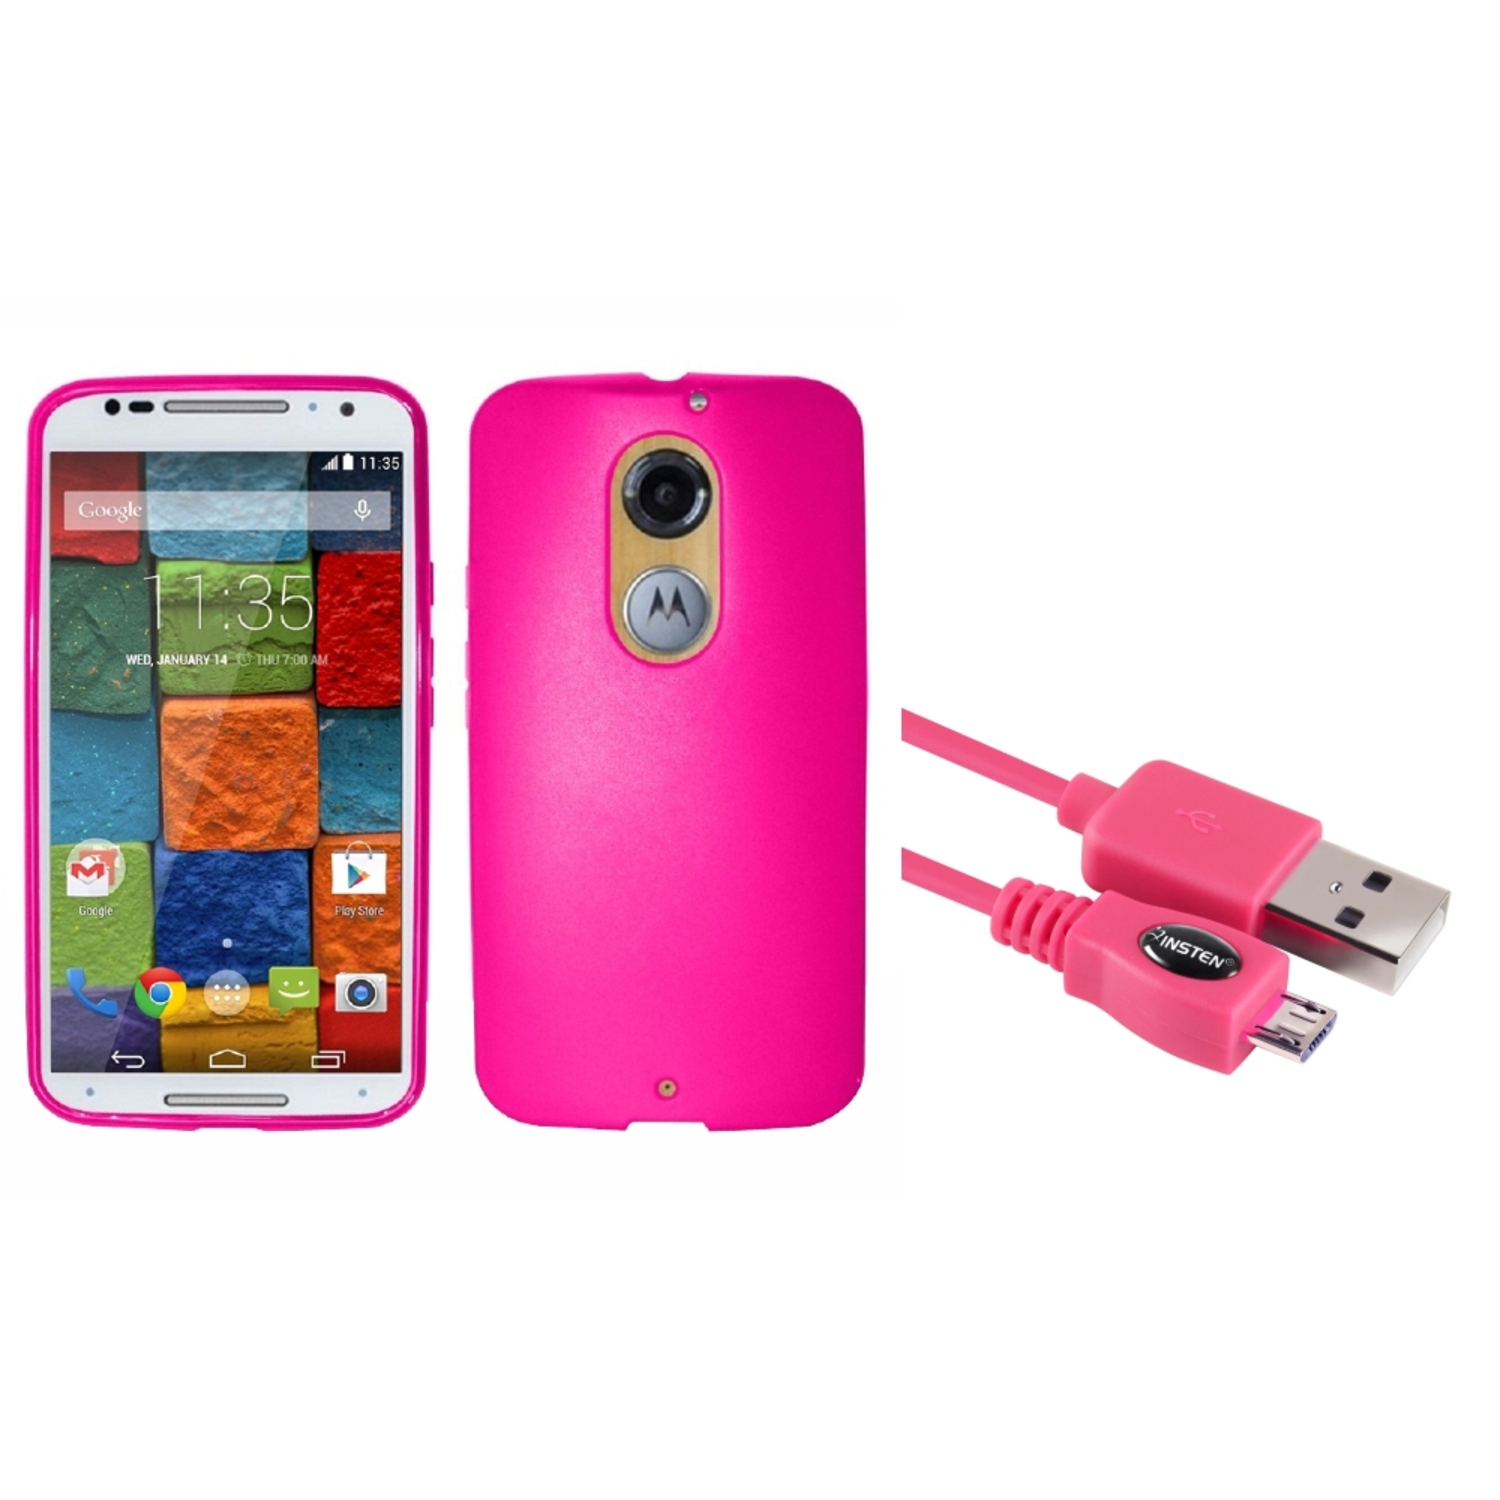 Insten Rubber Cover Case For Motorola Moto X (2nd Gen 2014 version) - Hot Pink (with USB Cable)